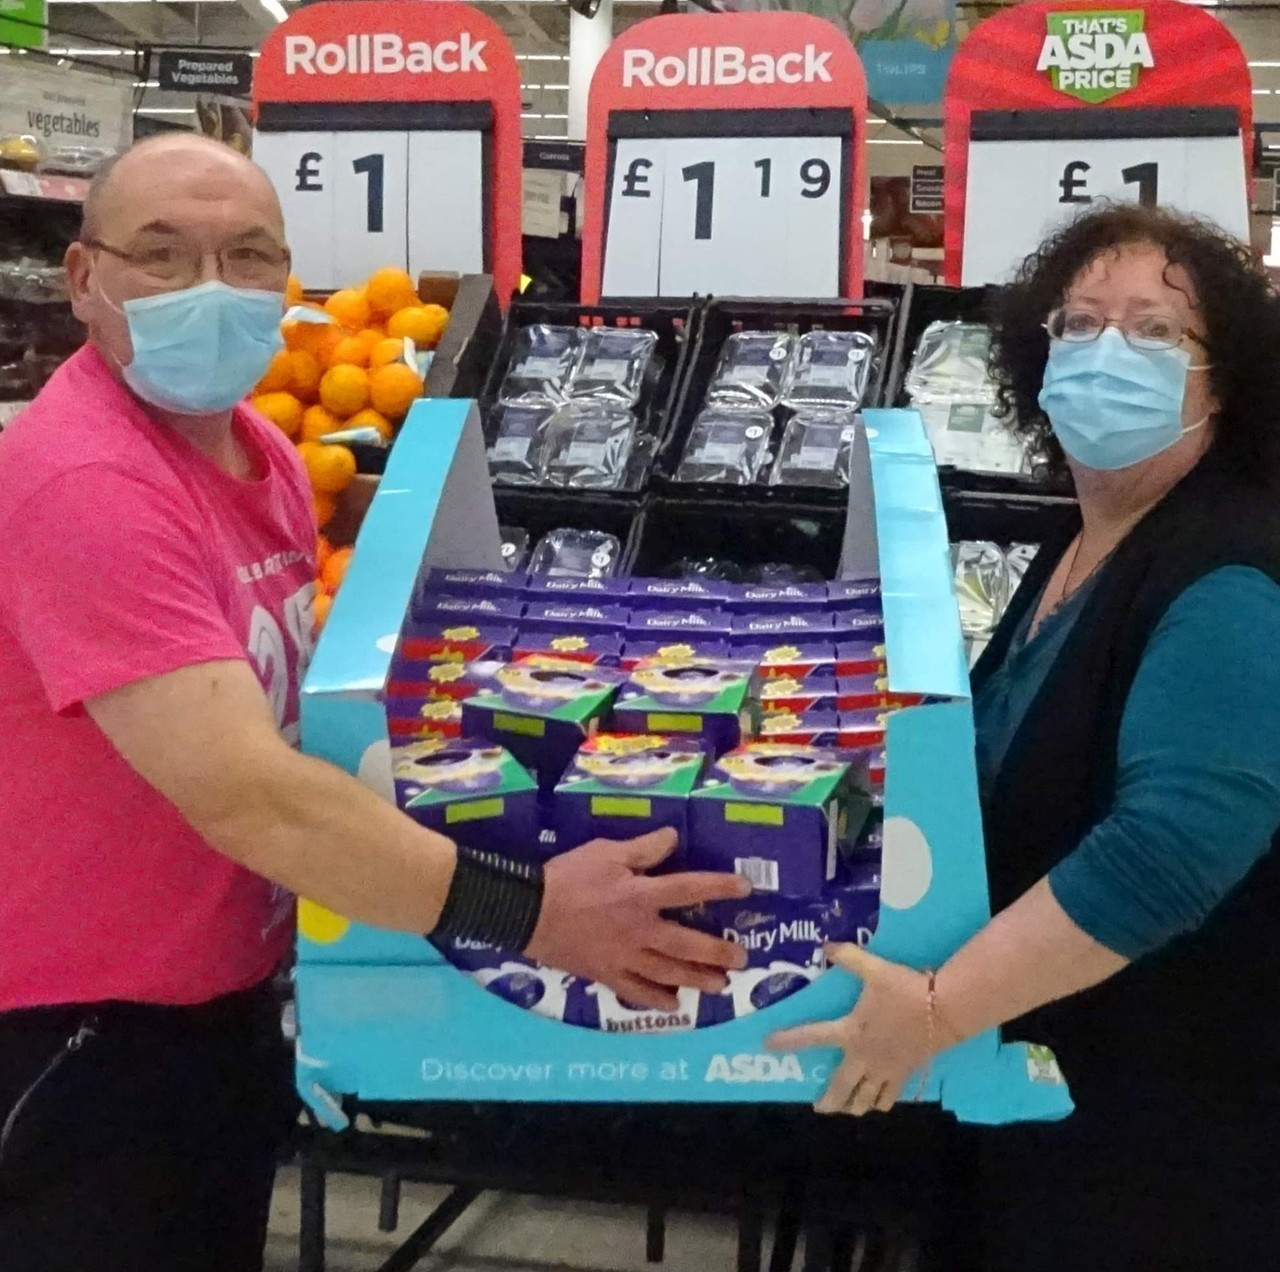 Easter Treats for The Socially Isolated & Those Who Go Without | Asda Stafford